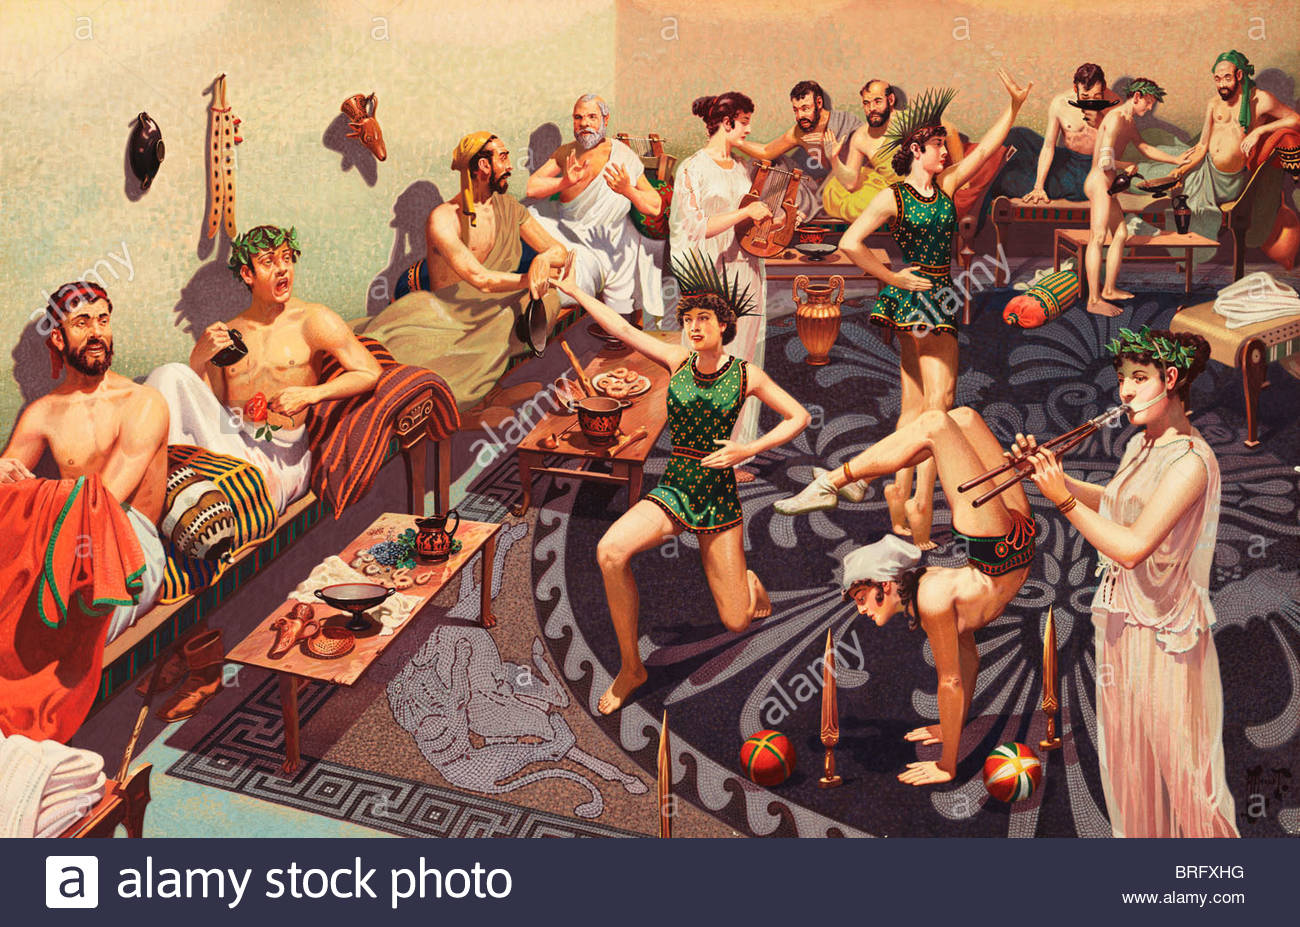 the roles of men and women in ancient greek society essay Read women in rome free essay and over  in every society, men and women have specific roles that  superior to the women men, in the ancient greek times.